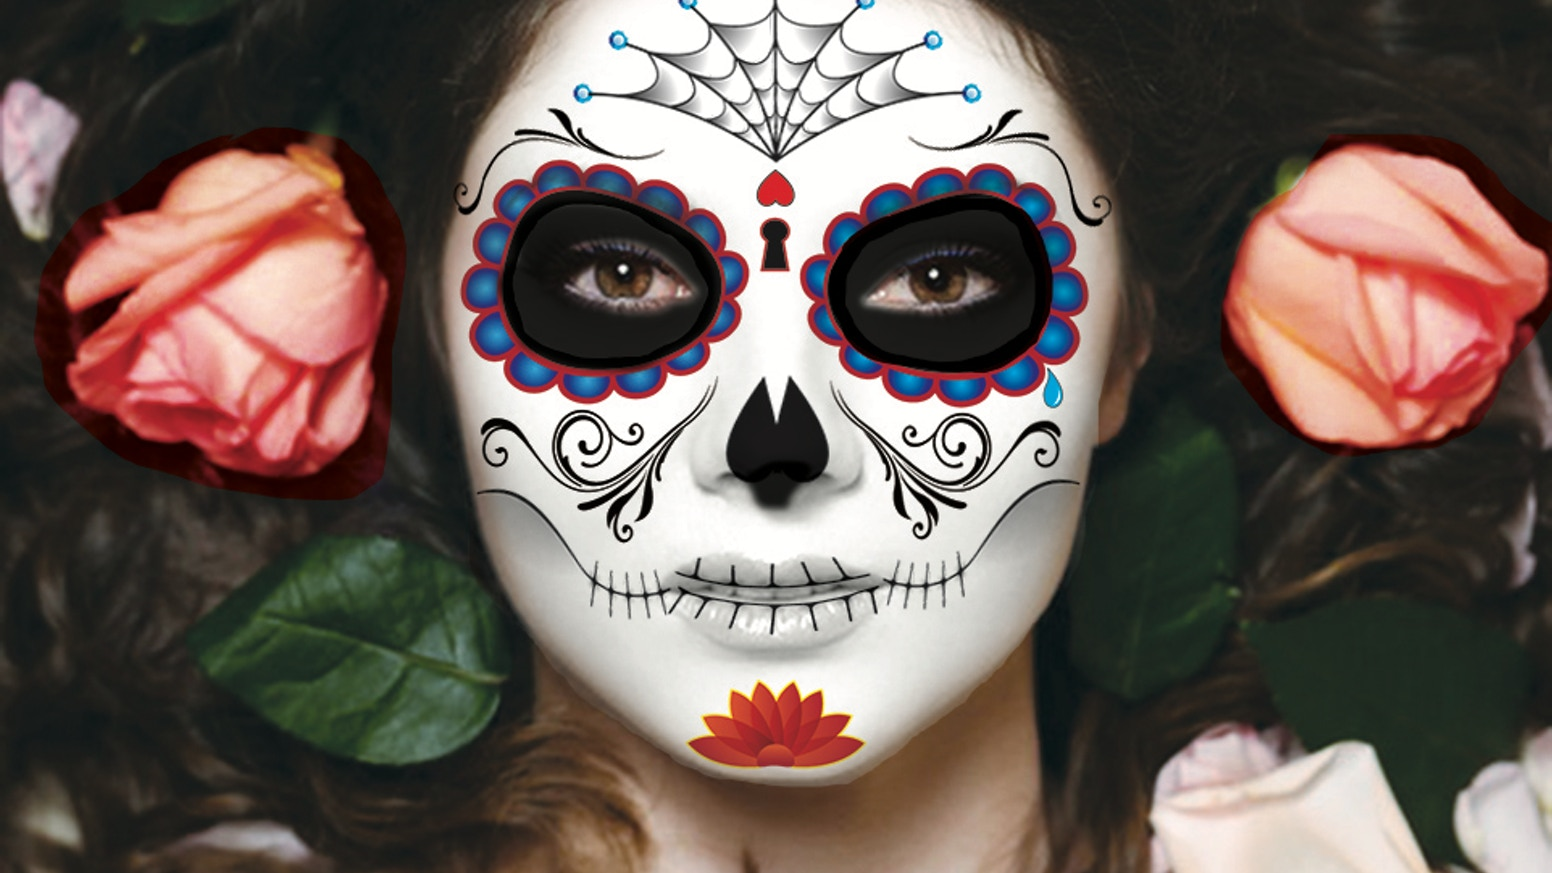 temporary tattoos make decorating your face as a sugar skull for halloween or the day